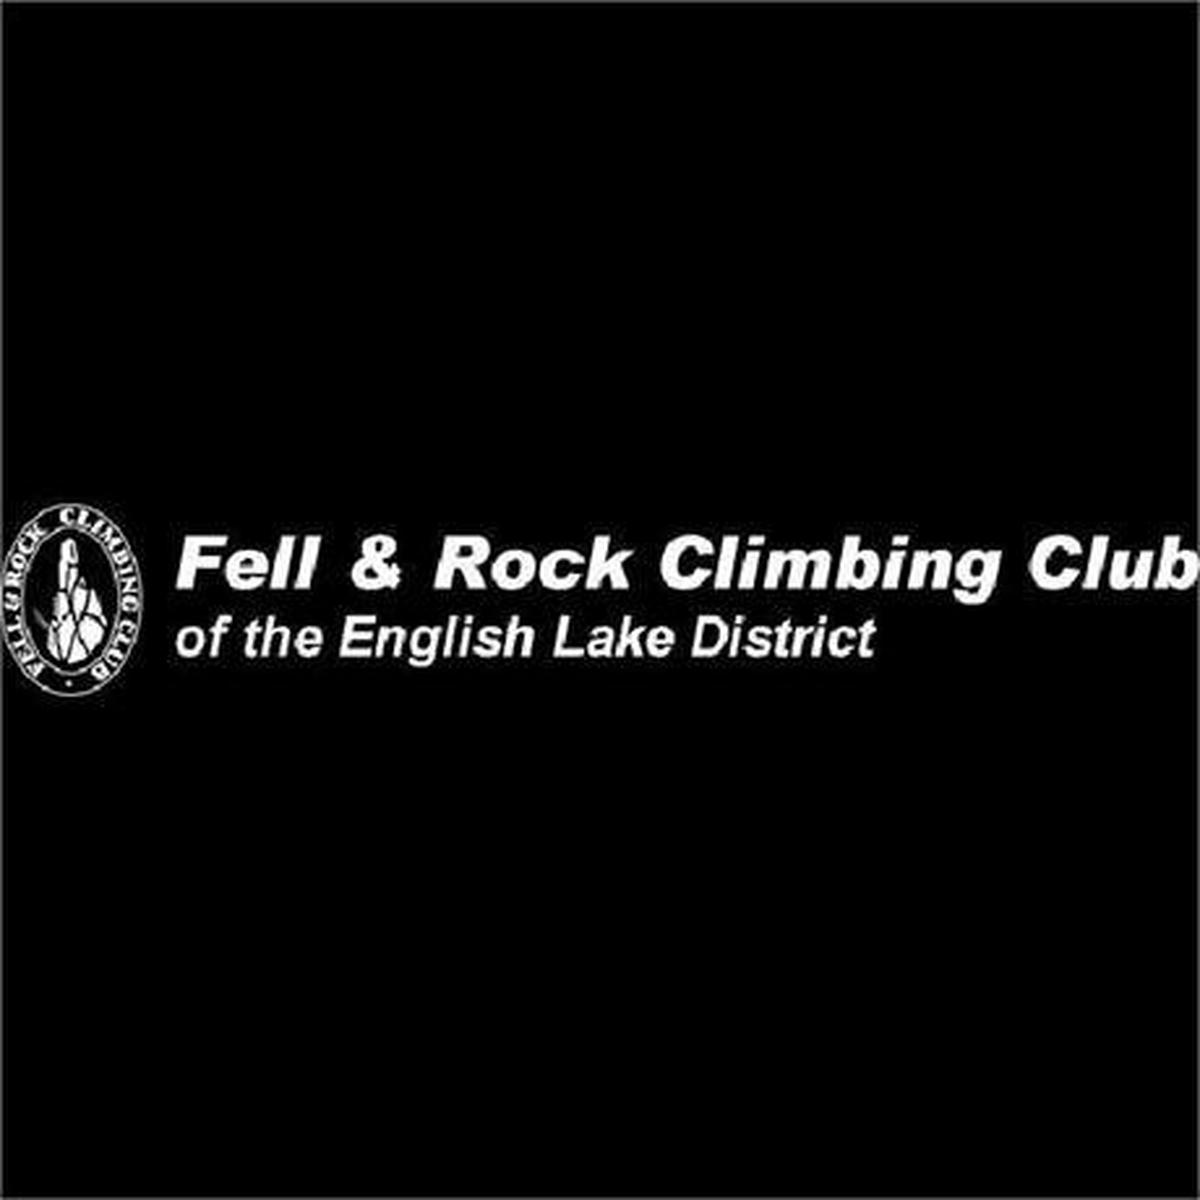 Cordee FRCC Climbing Guide Book: Scafell & Wasdale